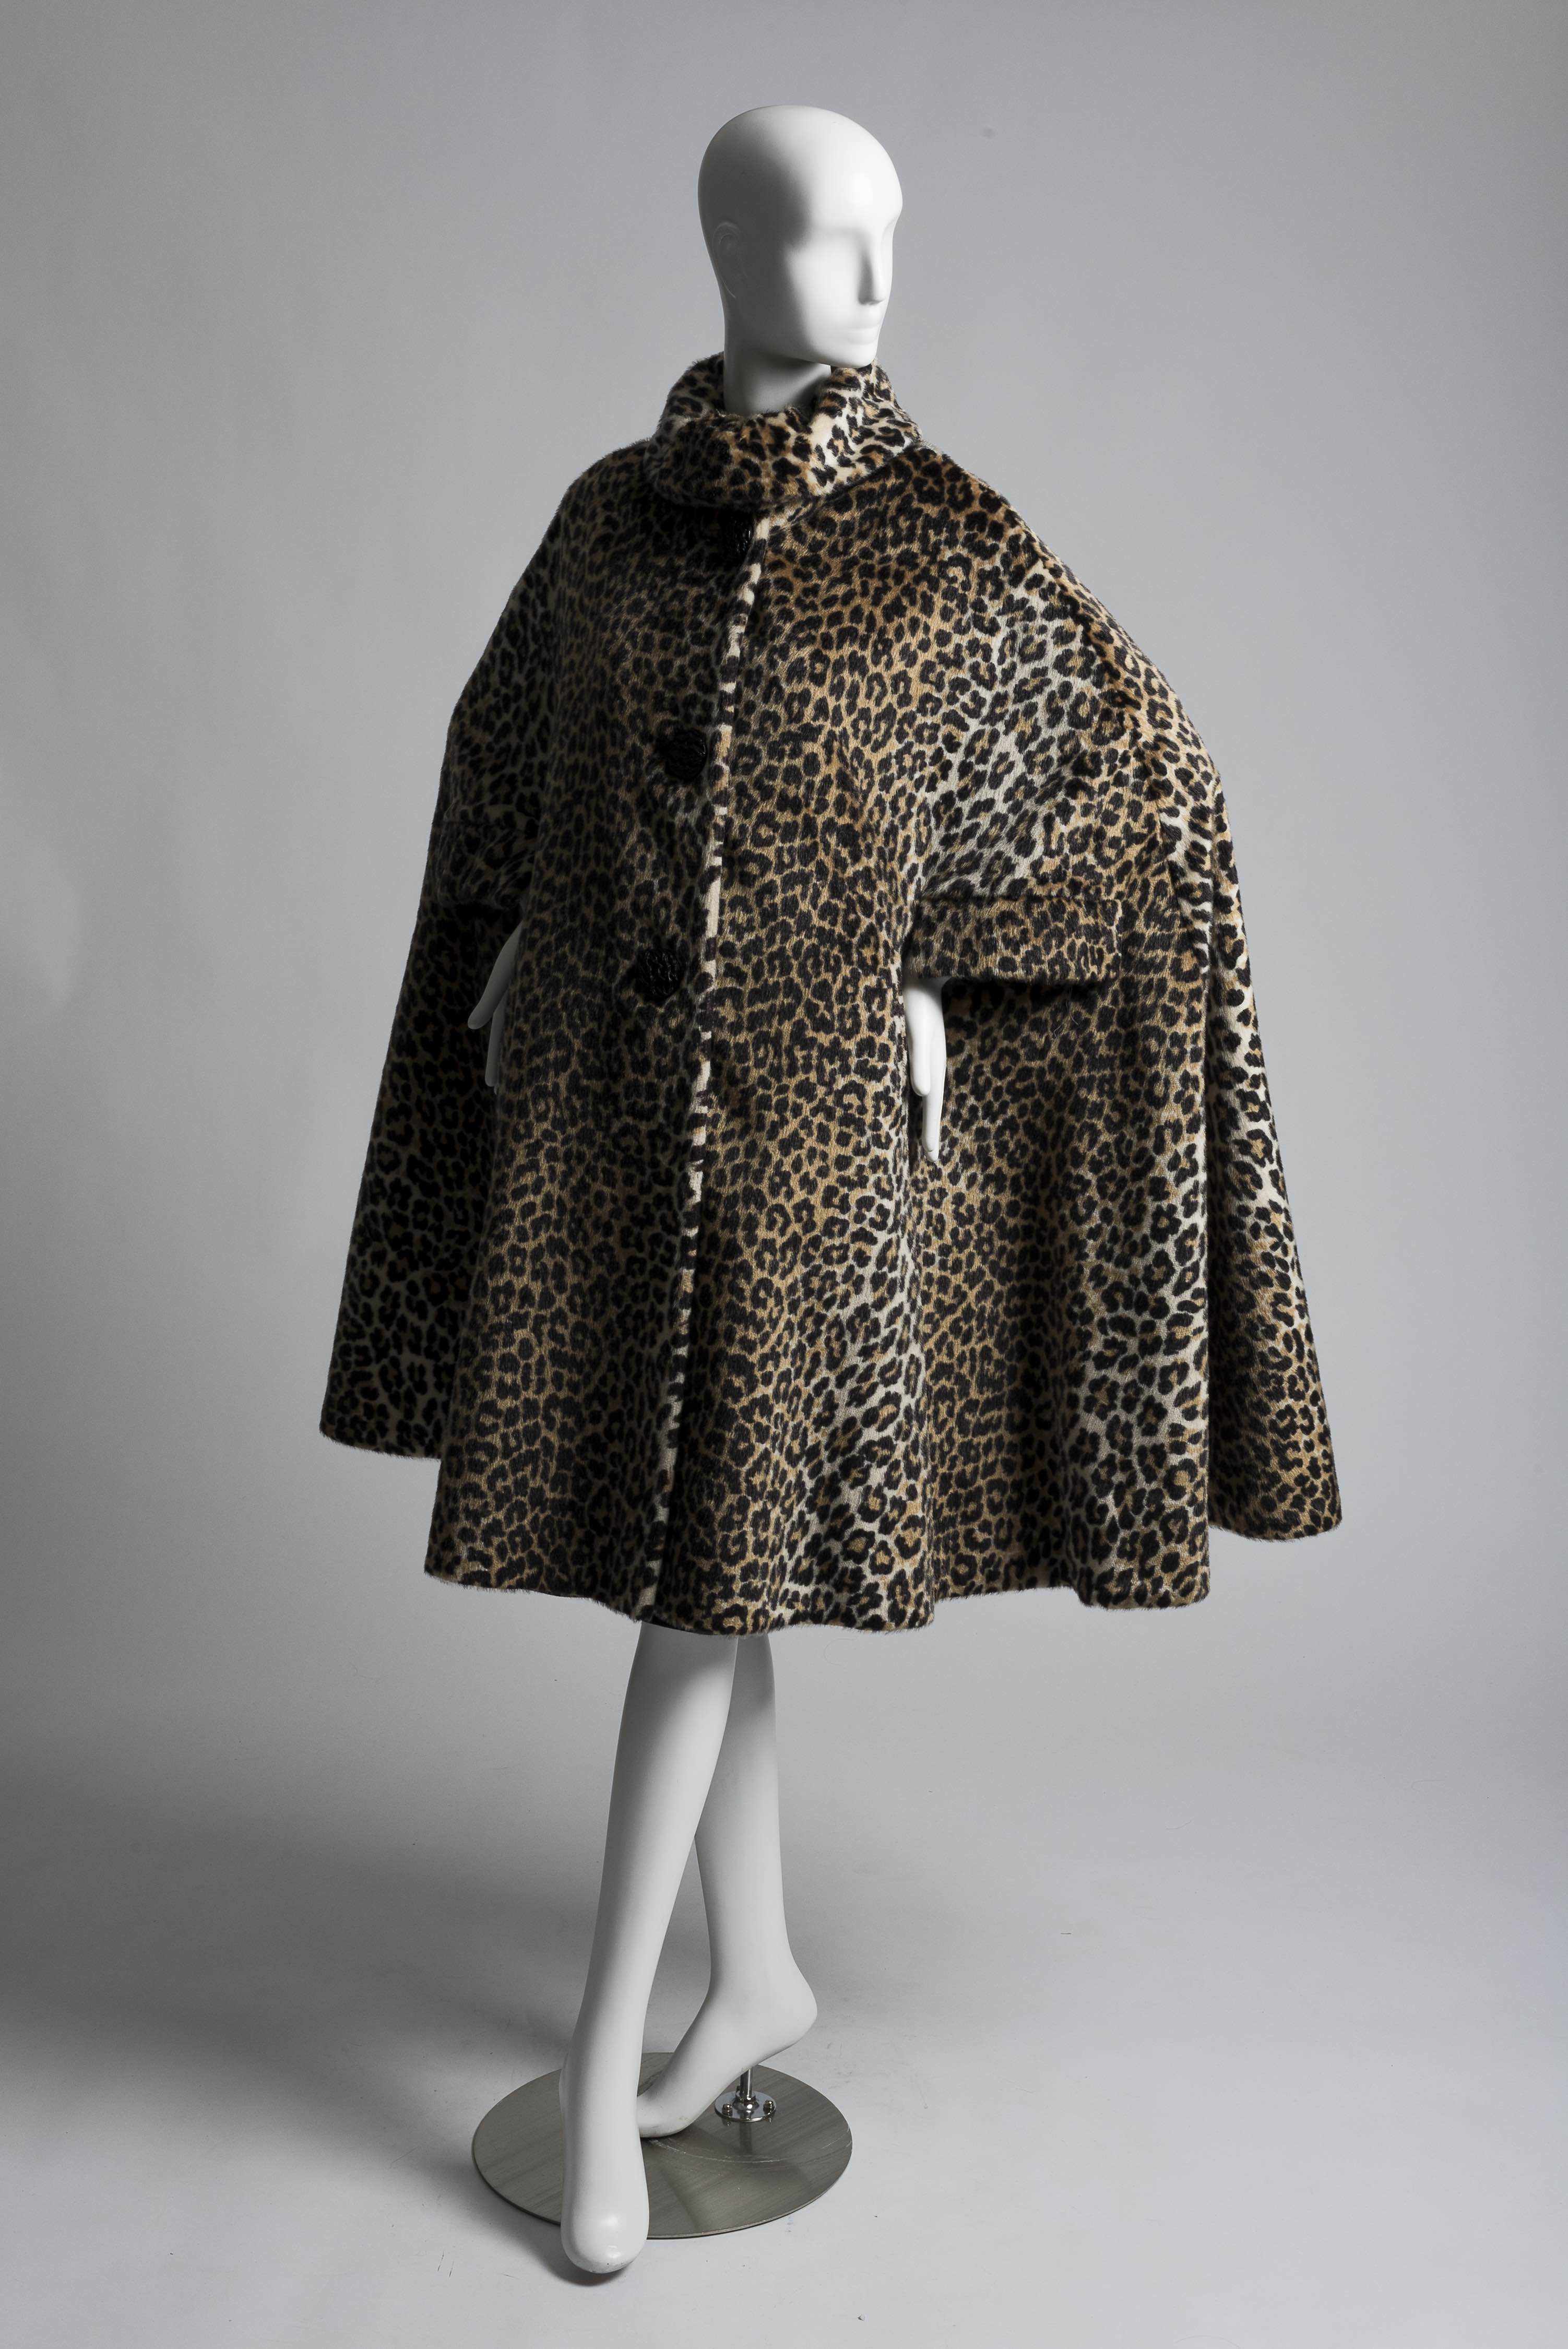 Ranging from early faux fur capes to contemporary ensembles recreating natural motifs, the featured garments connect our clothing to the world around us.